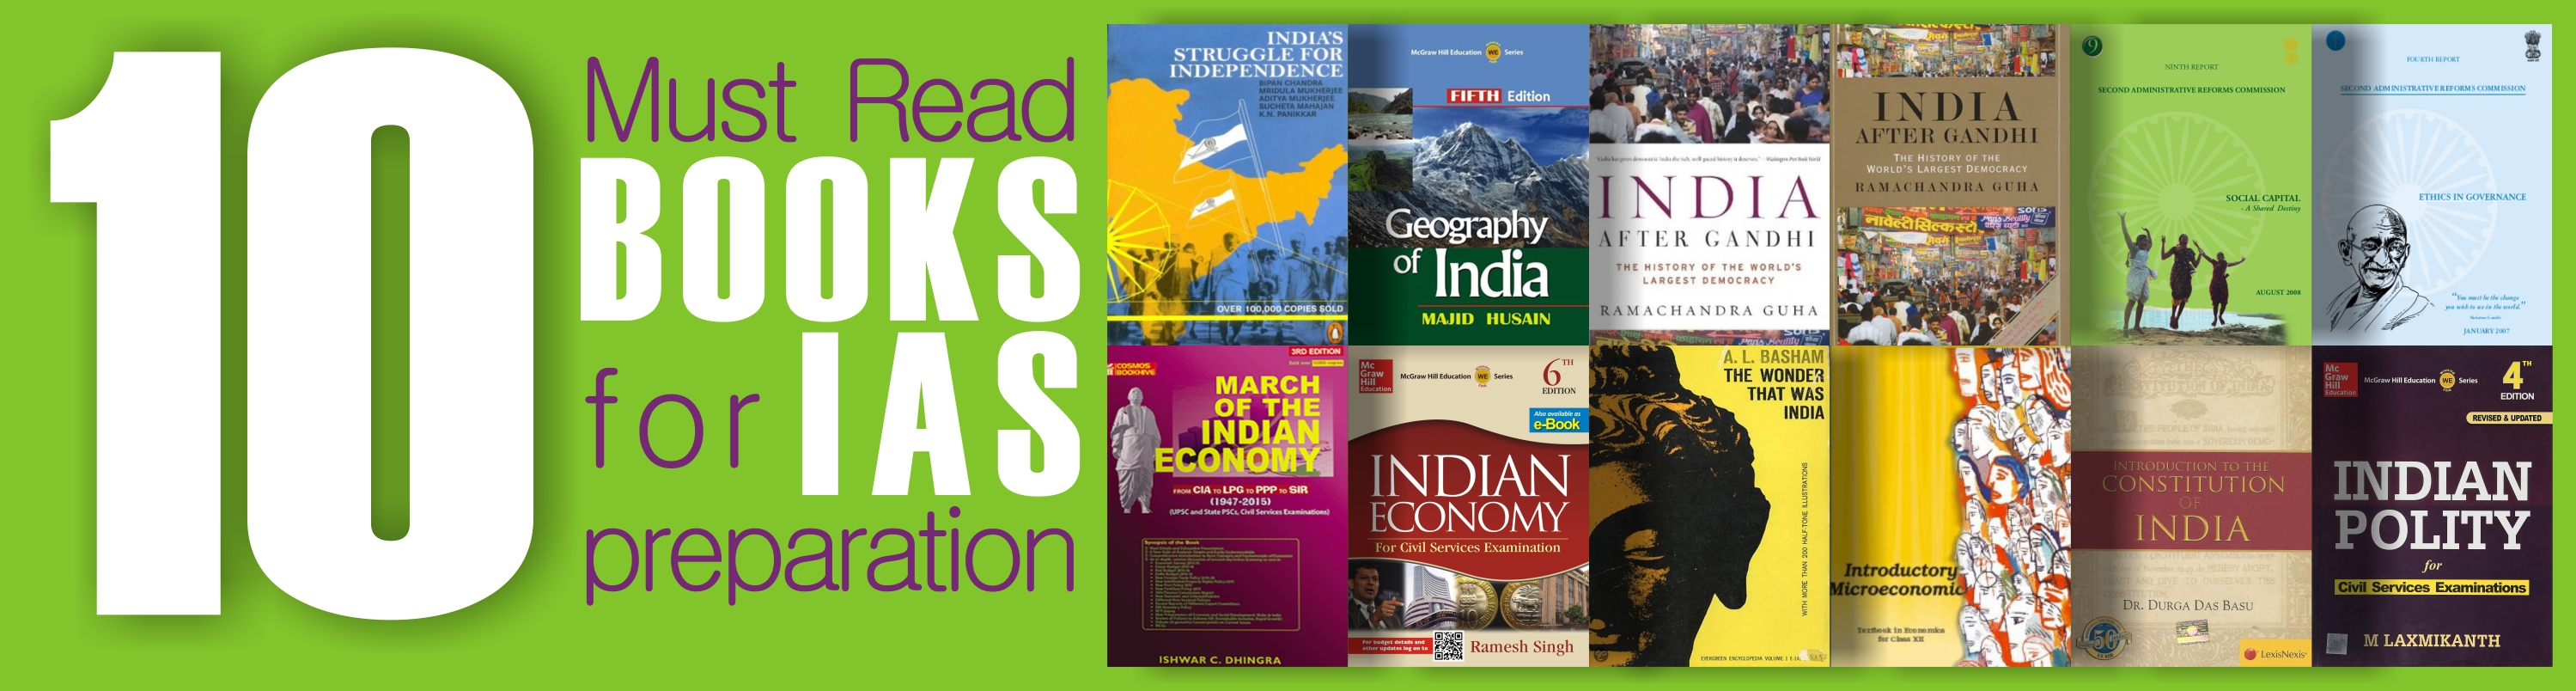 must books for ias asp ts byjus you can plenty of lists filled plenty of books for ias if you search around for material to help you start your preparation for upsc